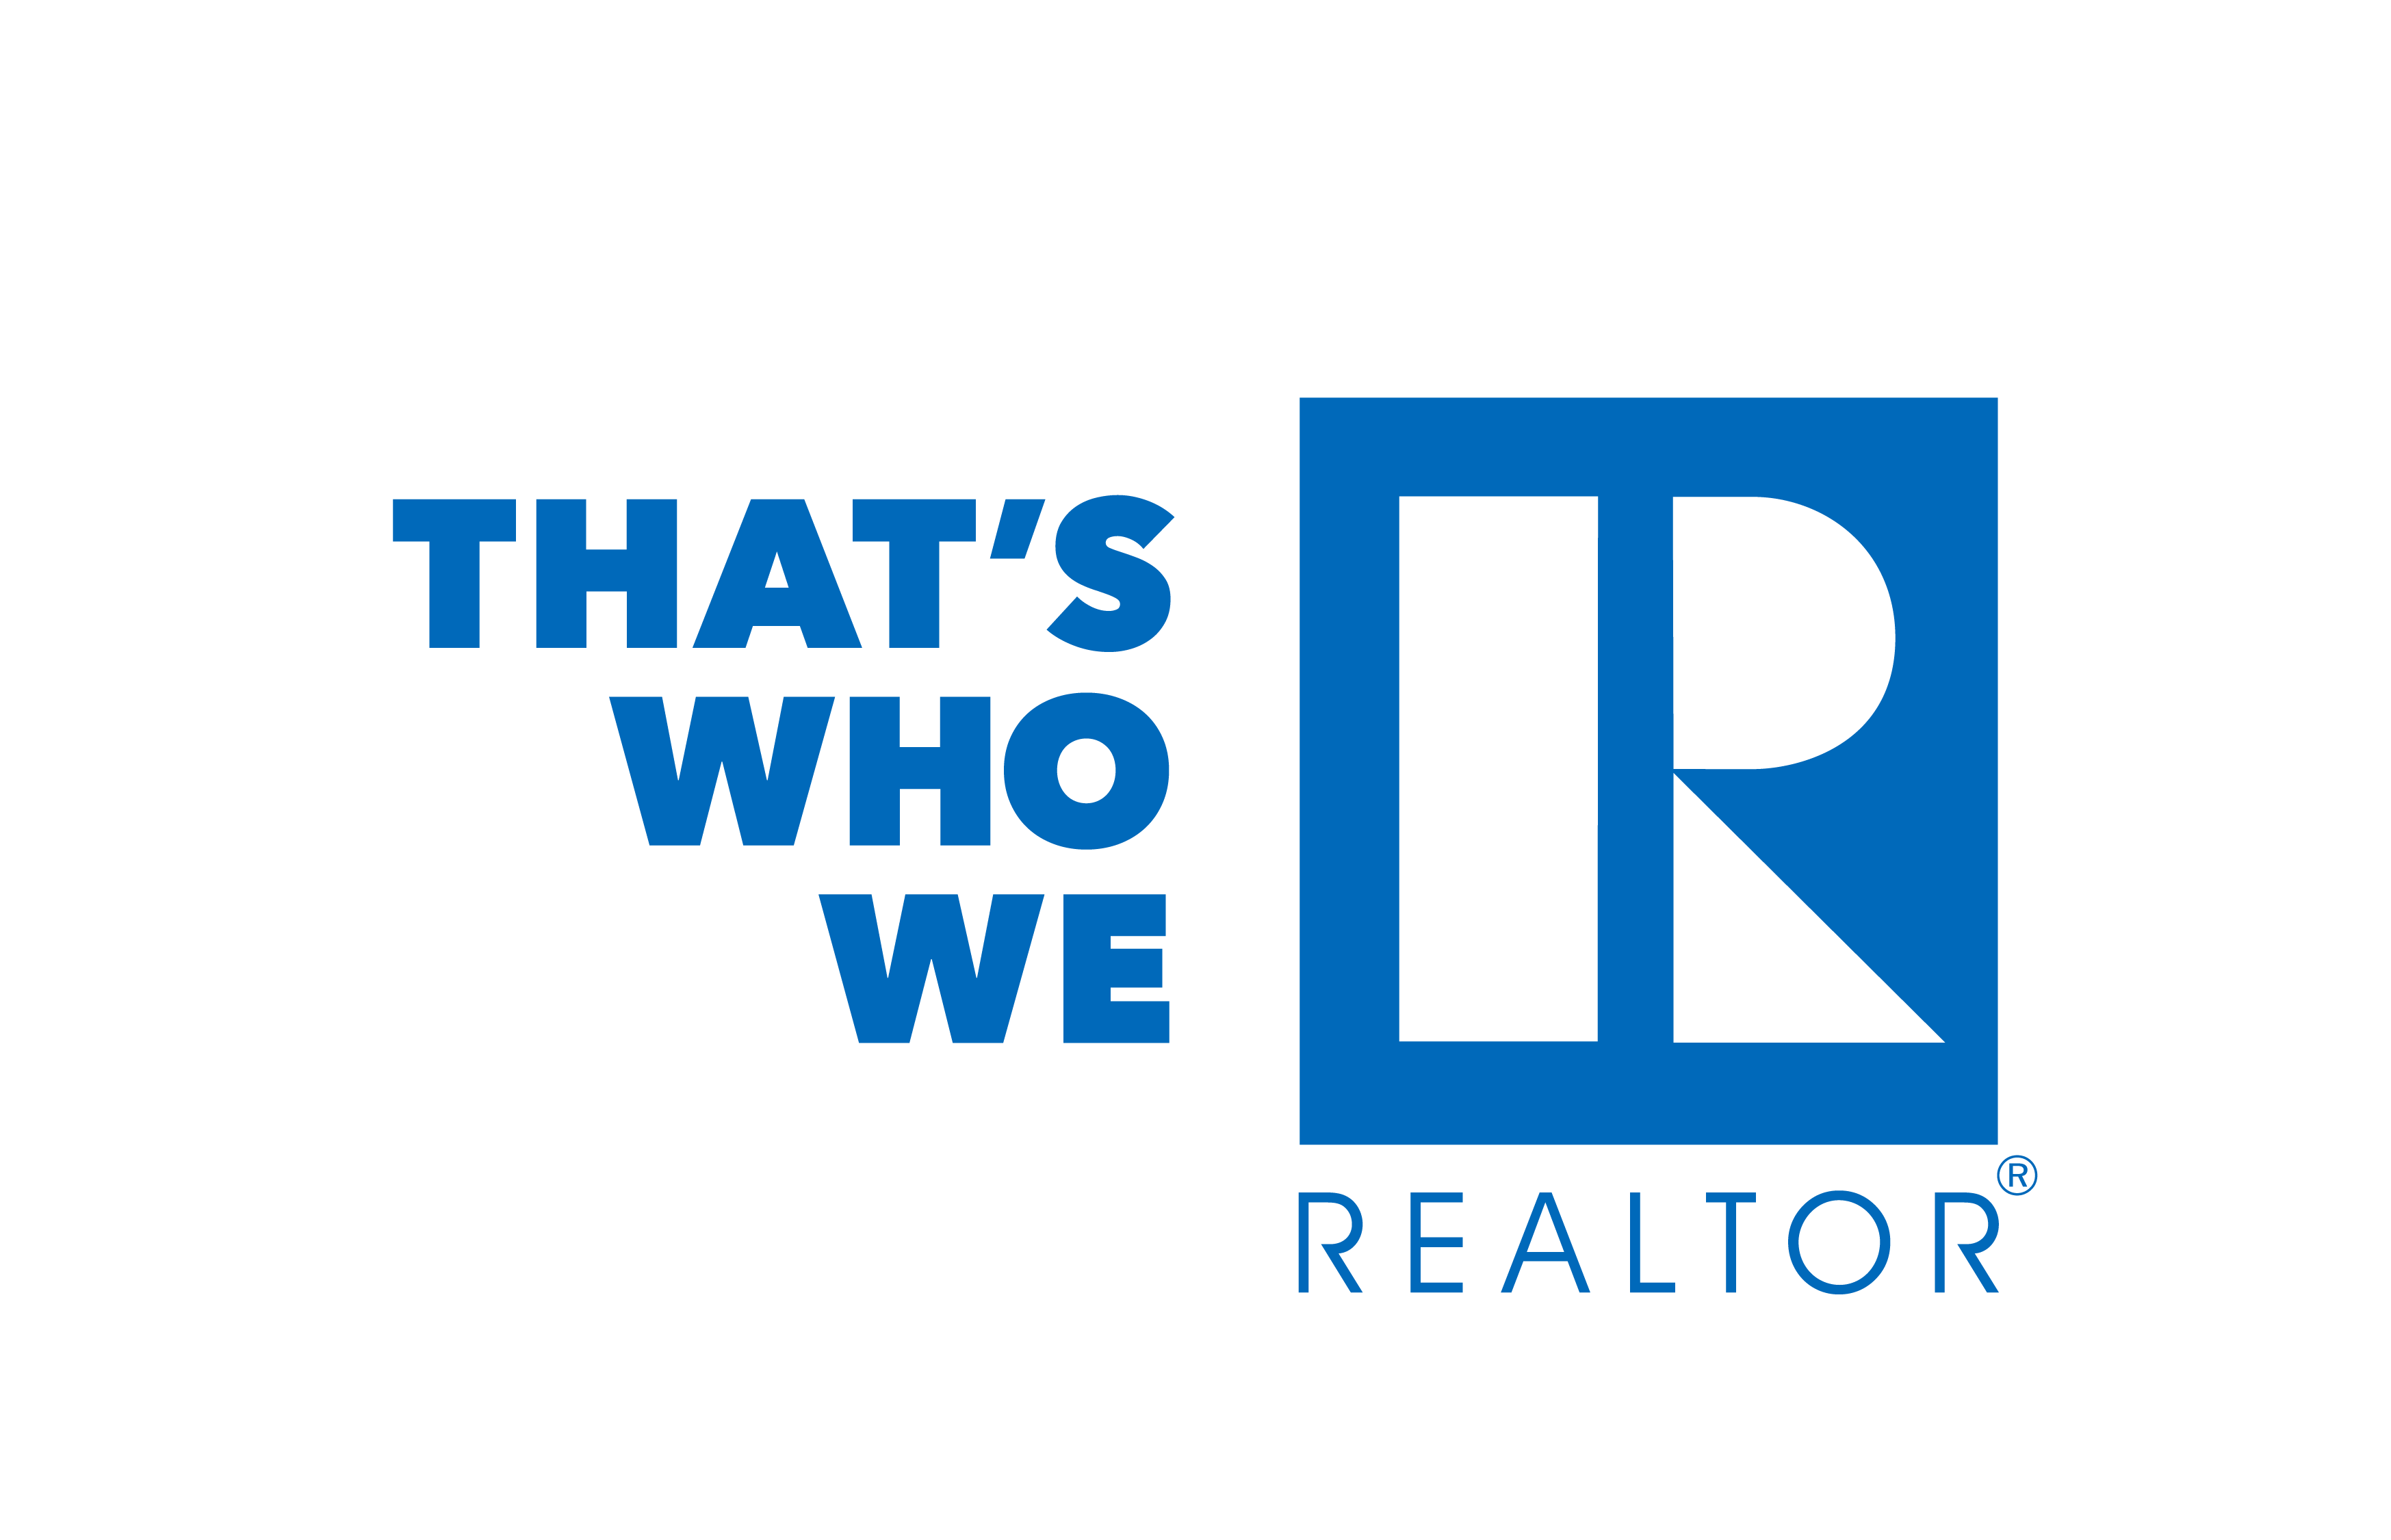 ThatsWhoWeR CampaignMark Final stacked REALTORblue